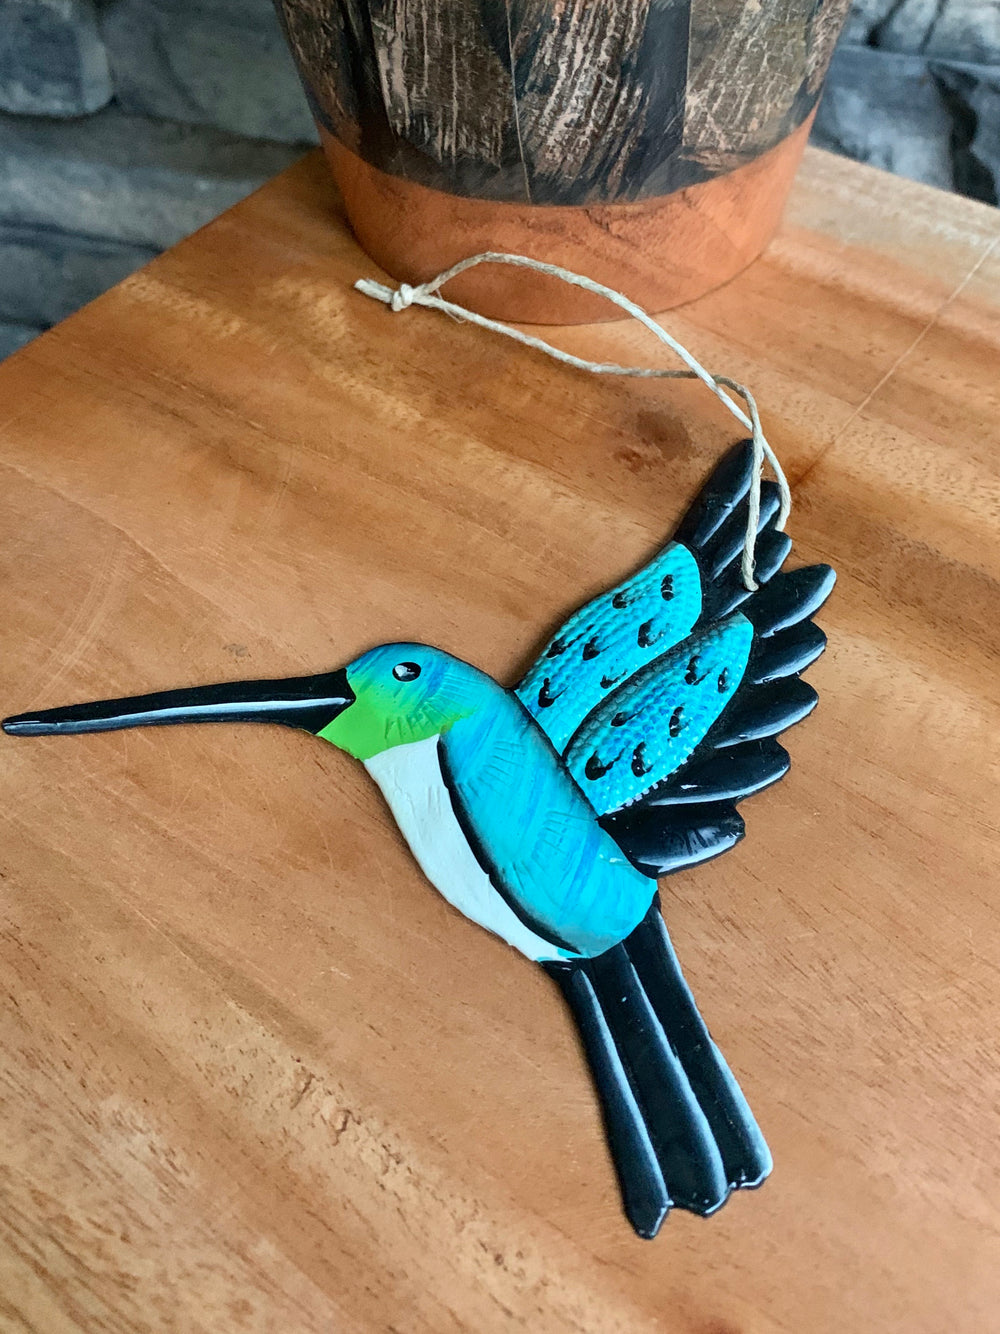 Bird Ornament by Singing Rooster from Haiti